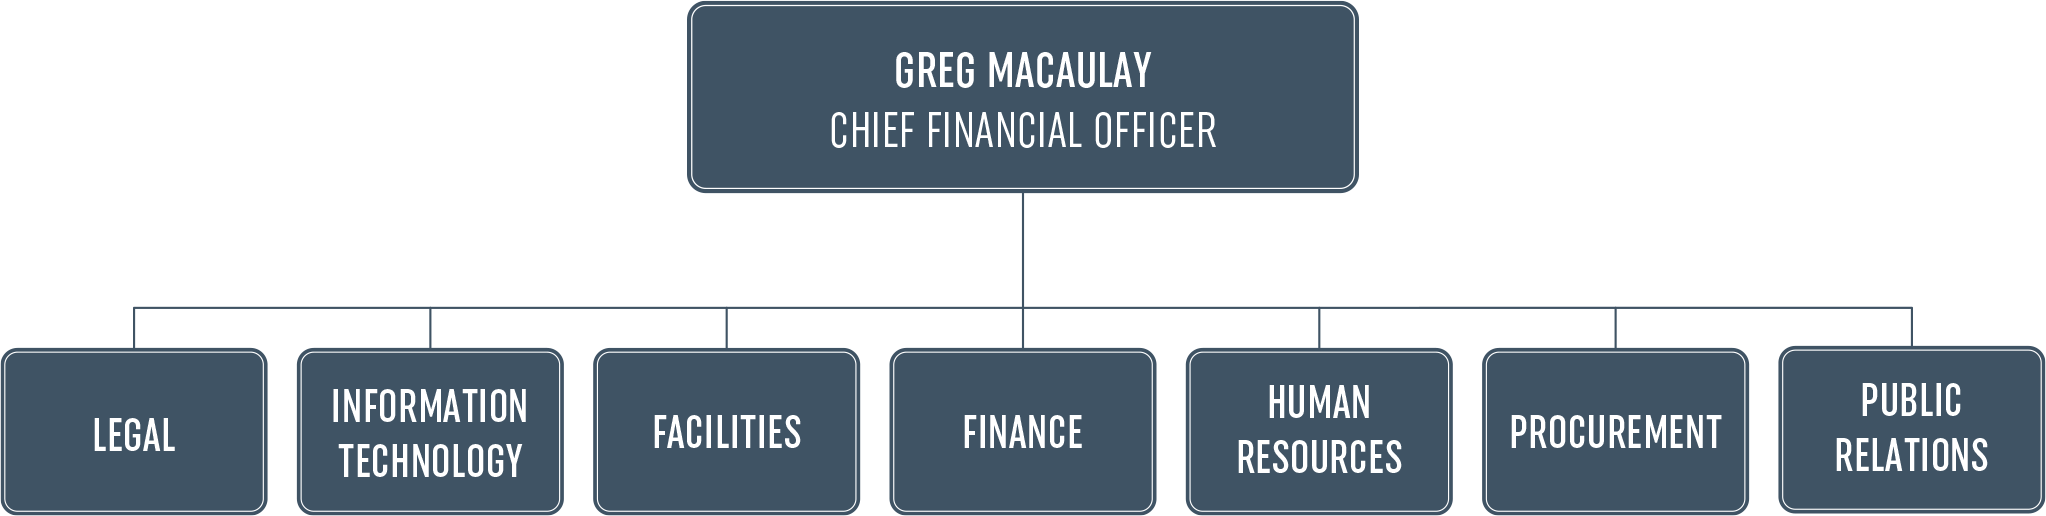 Flowchart showing Greg Macaulay, Chief Financial Manager in charge of Legal, Information Technology, Facilities, Finance, Human Resources, Procurement and Public Relations